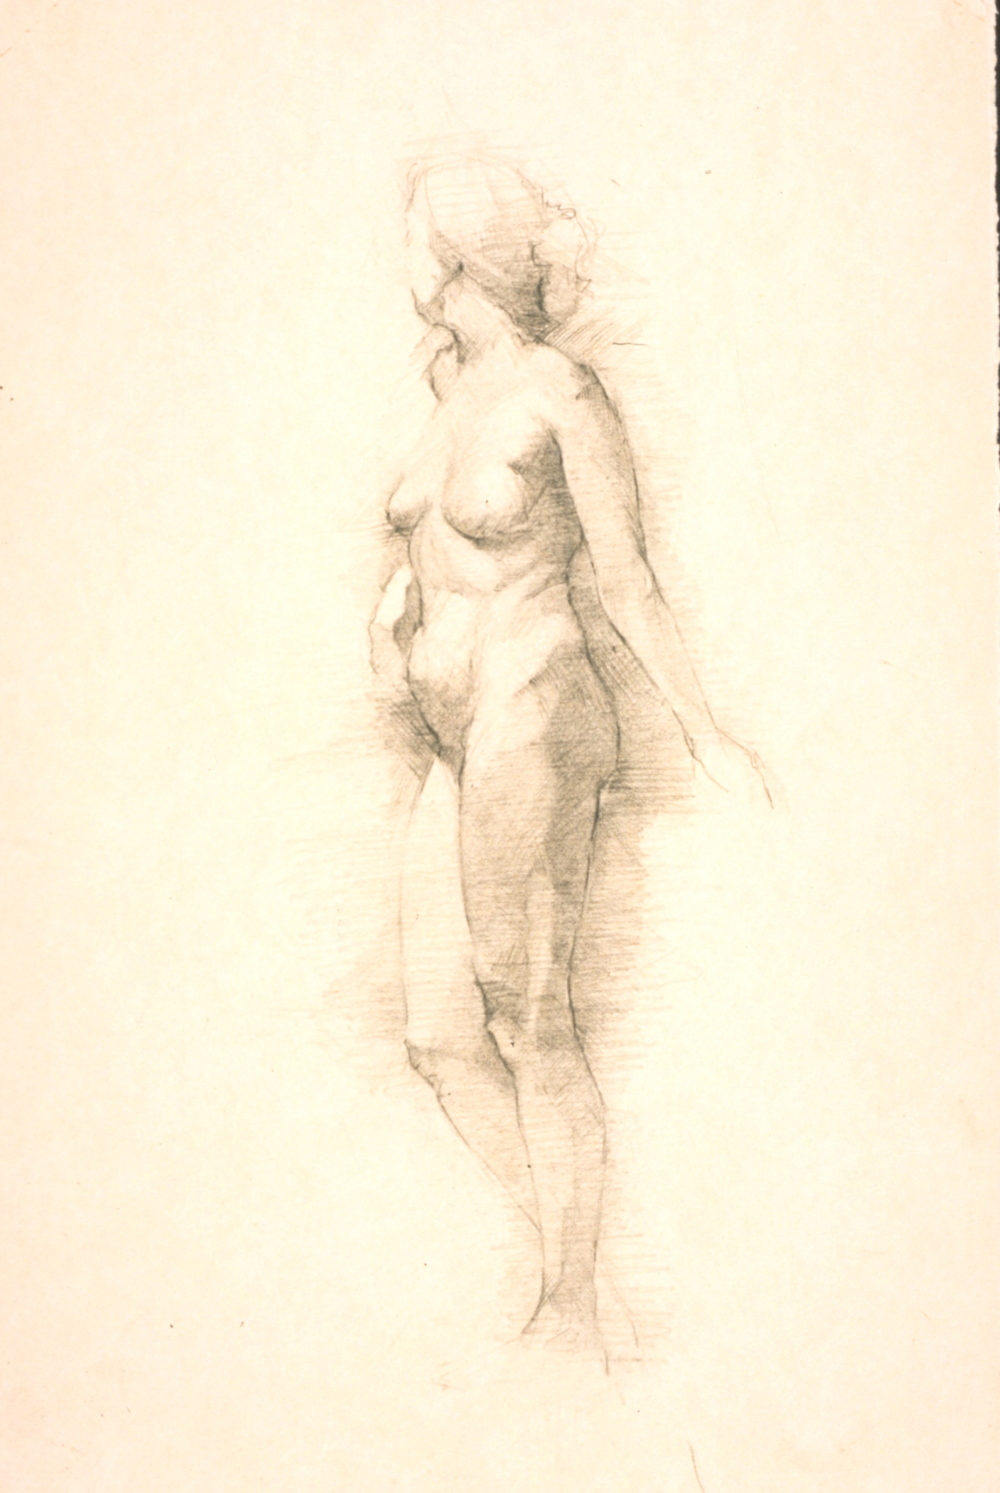 Femal Nude, side